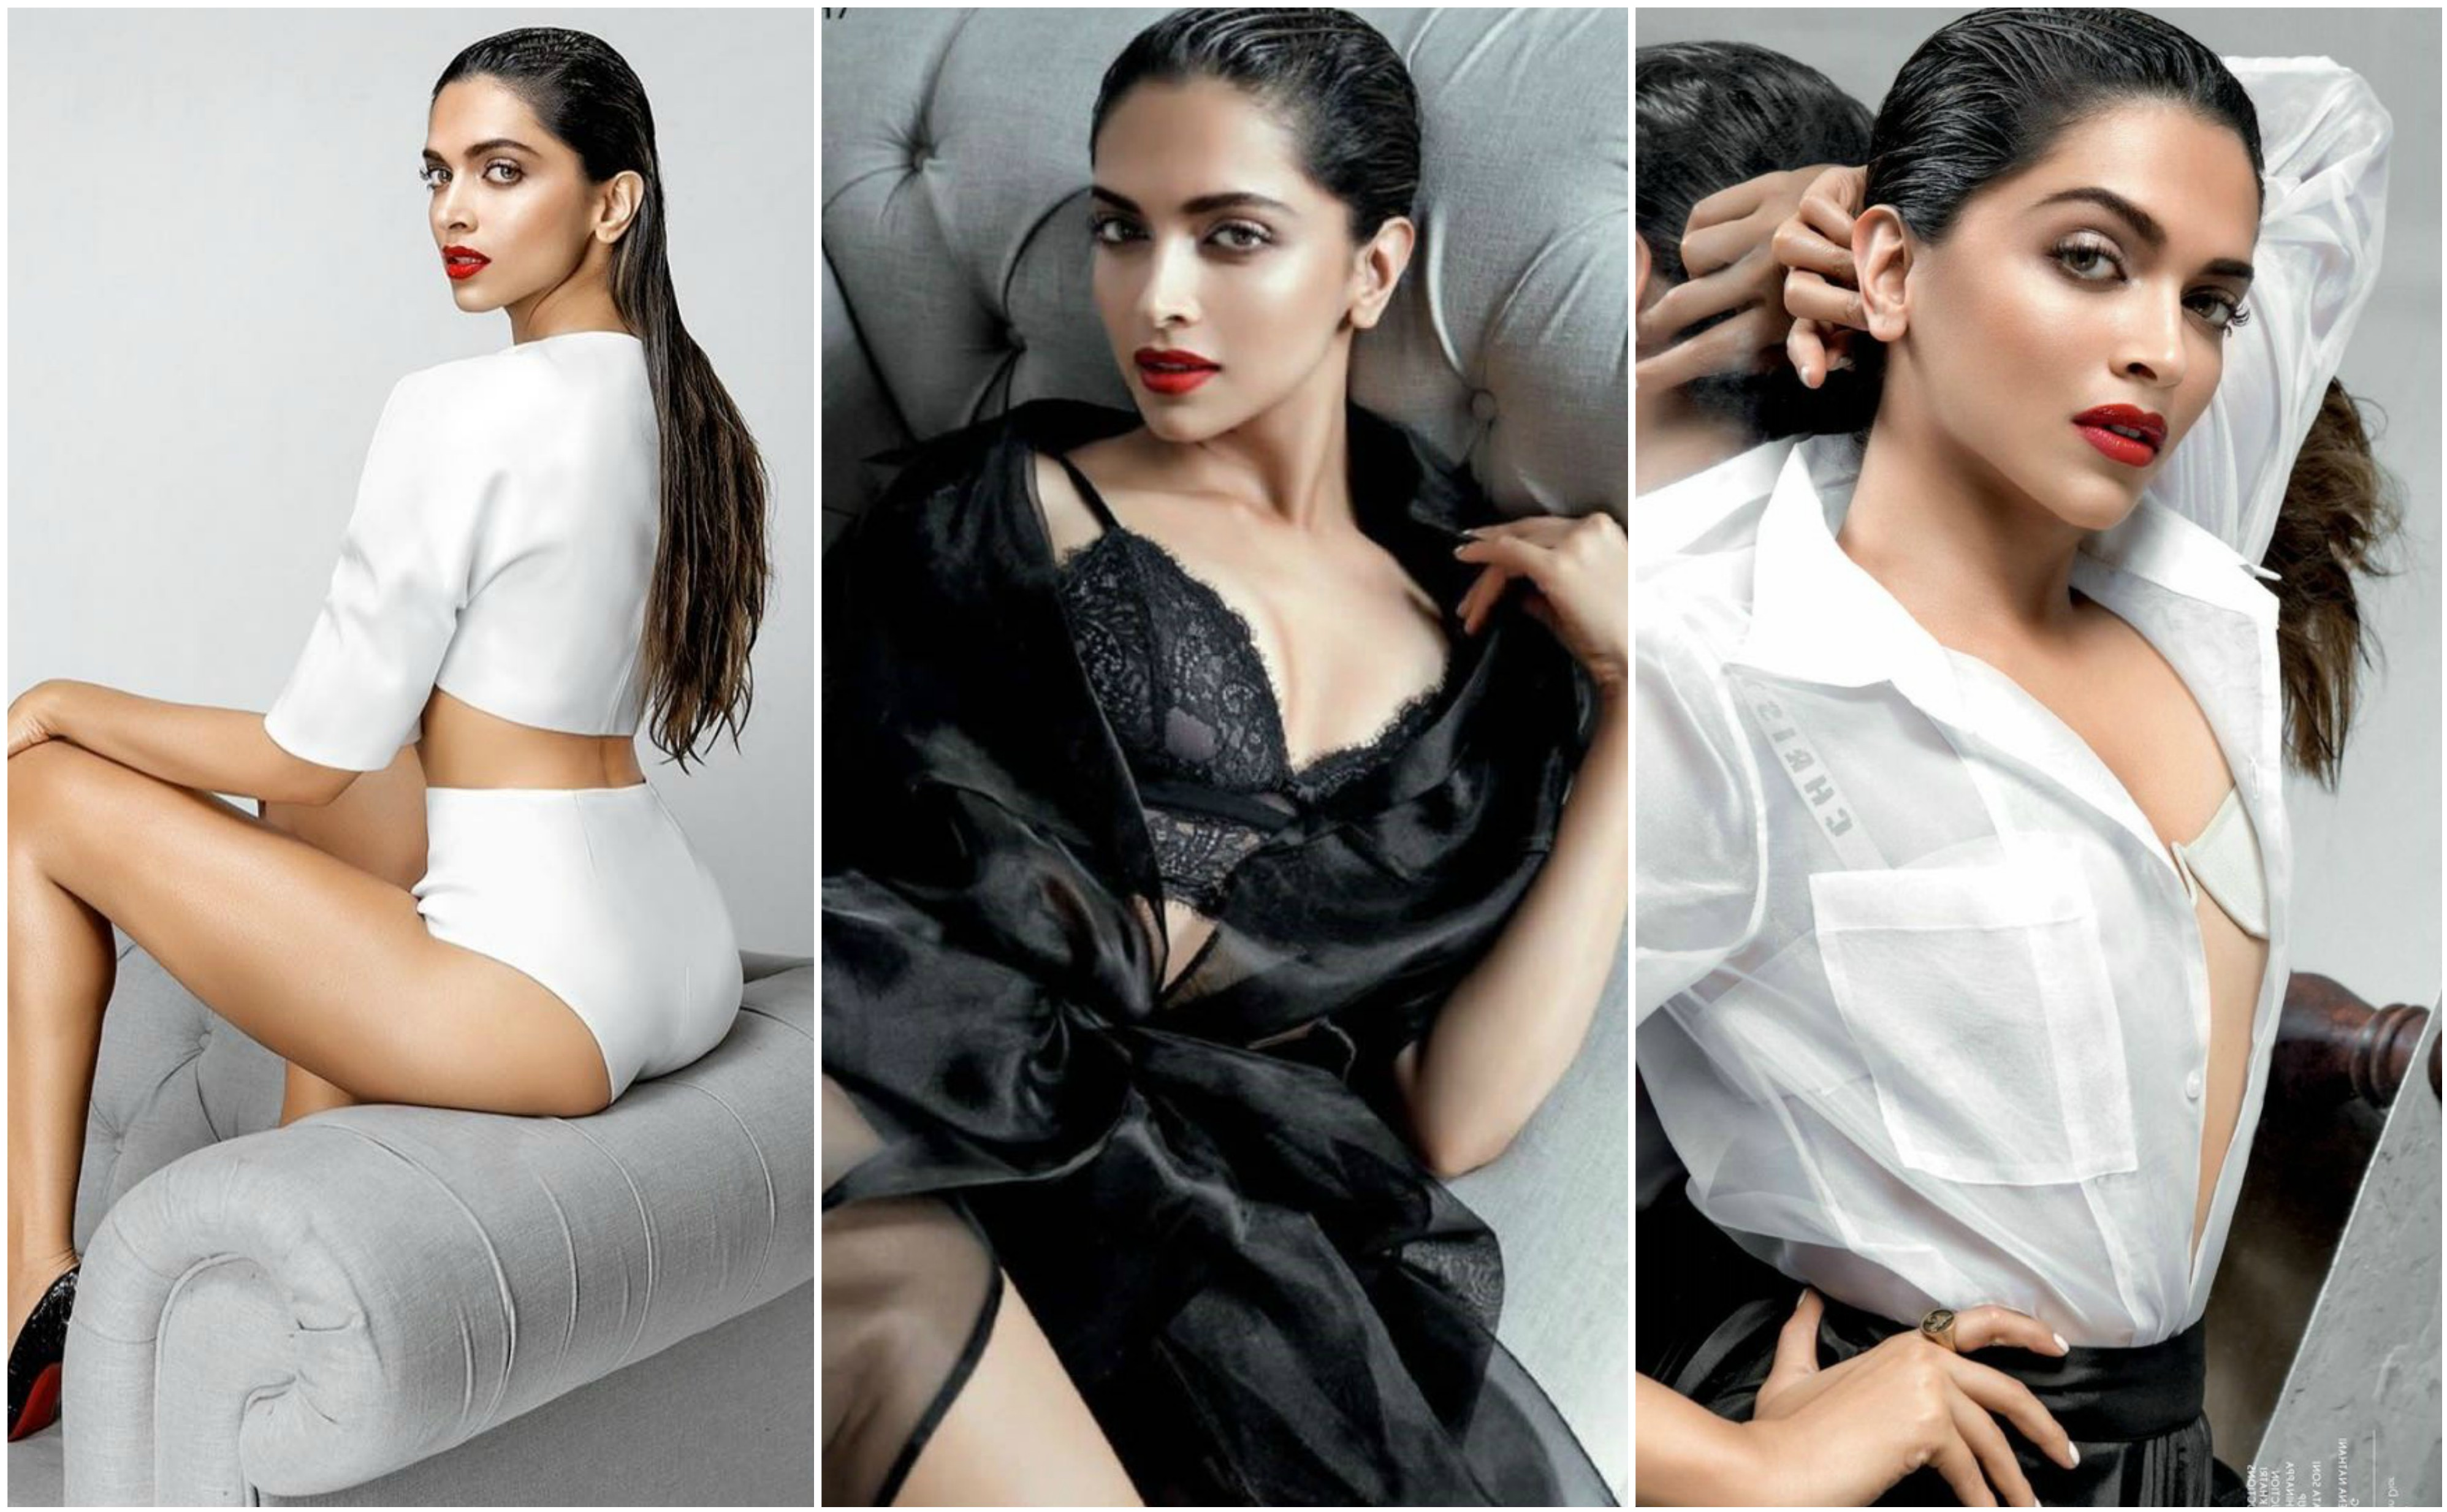 Bollywood Actresses In Maxim: These Pictures Of Deepika Padukone From Maxim Will Make